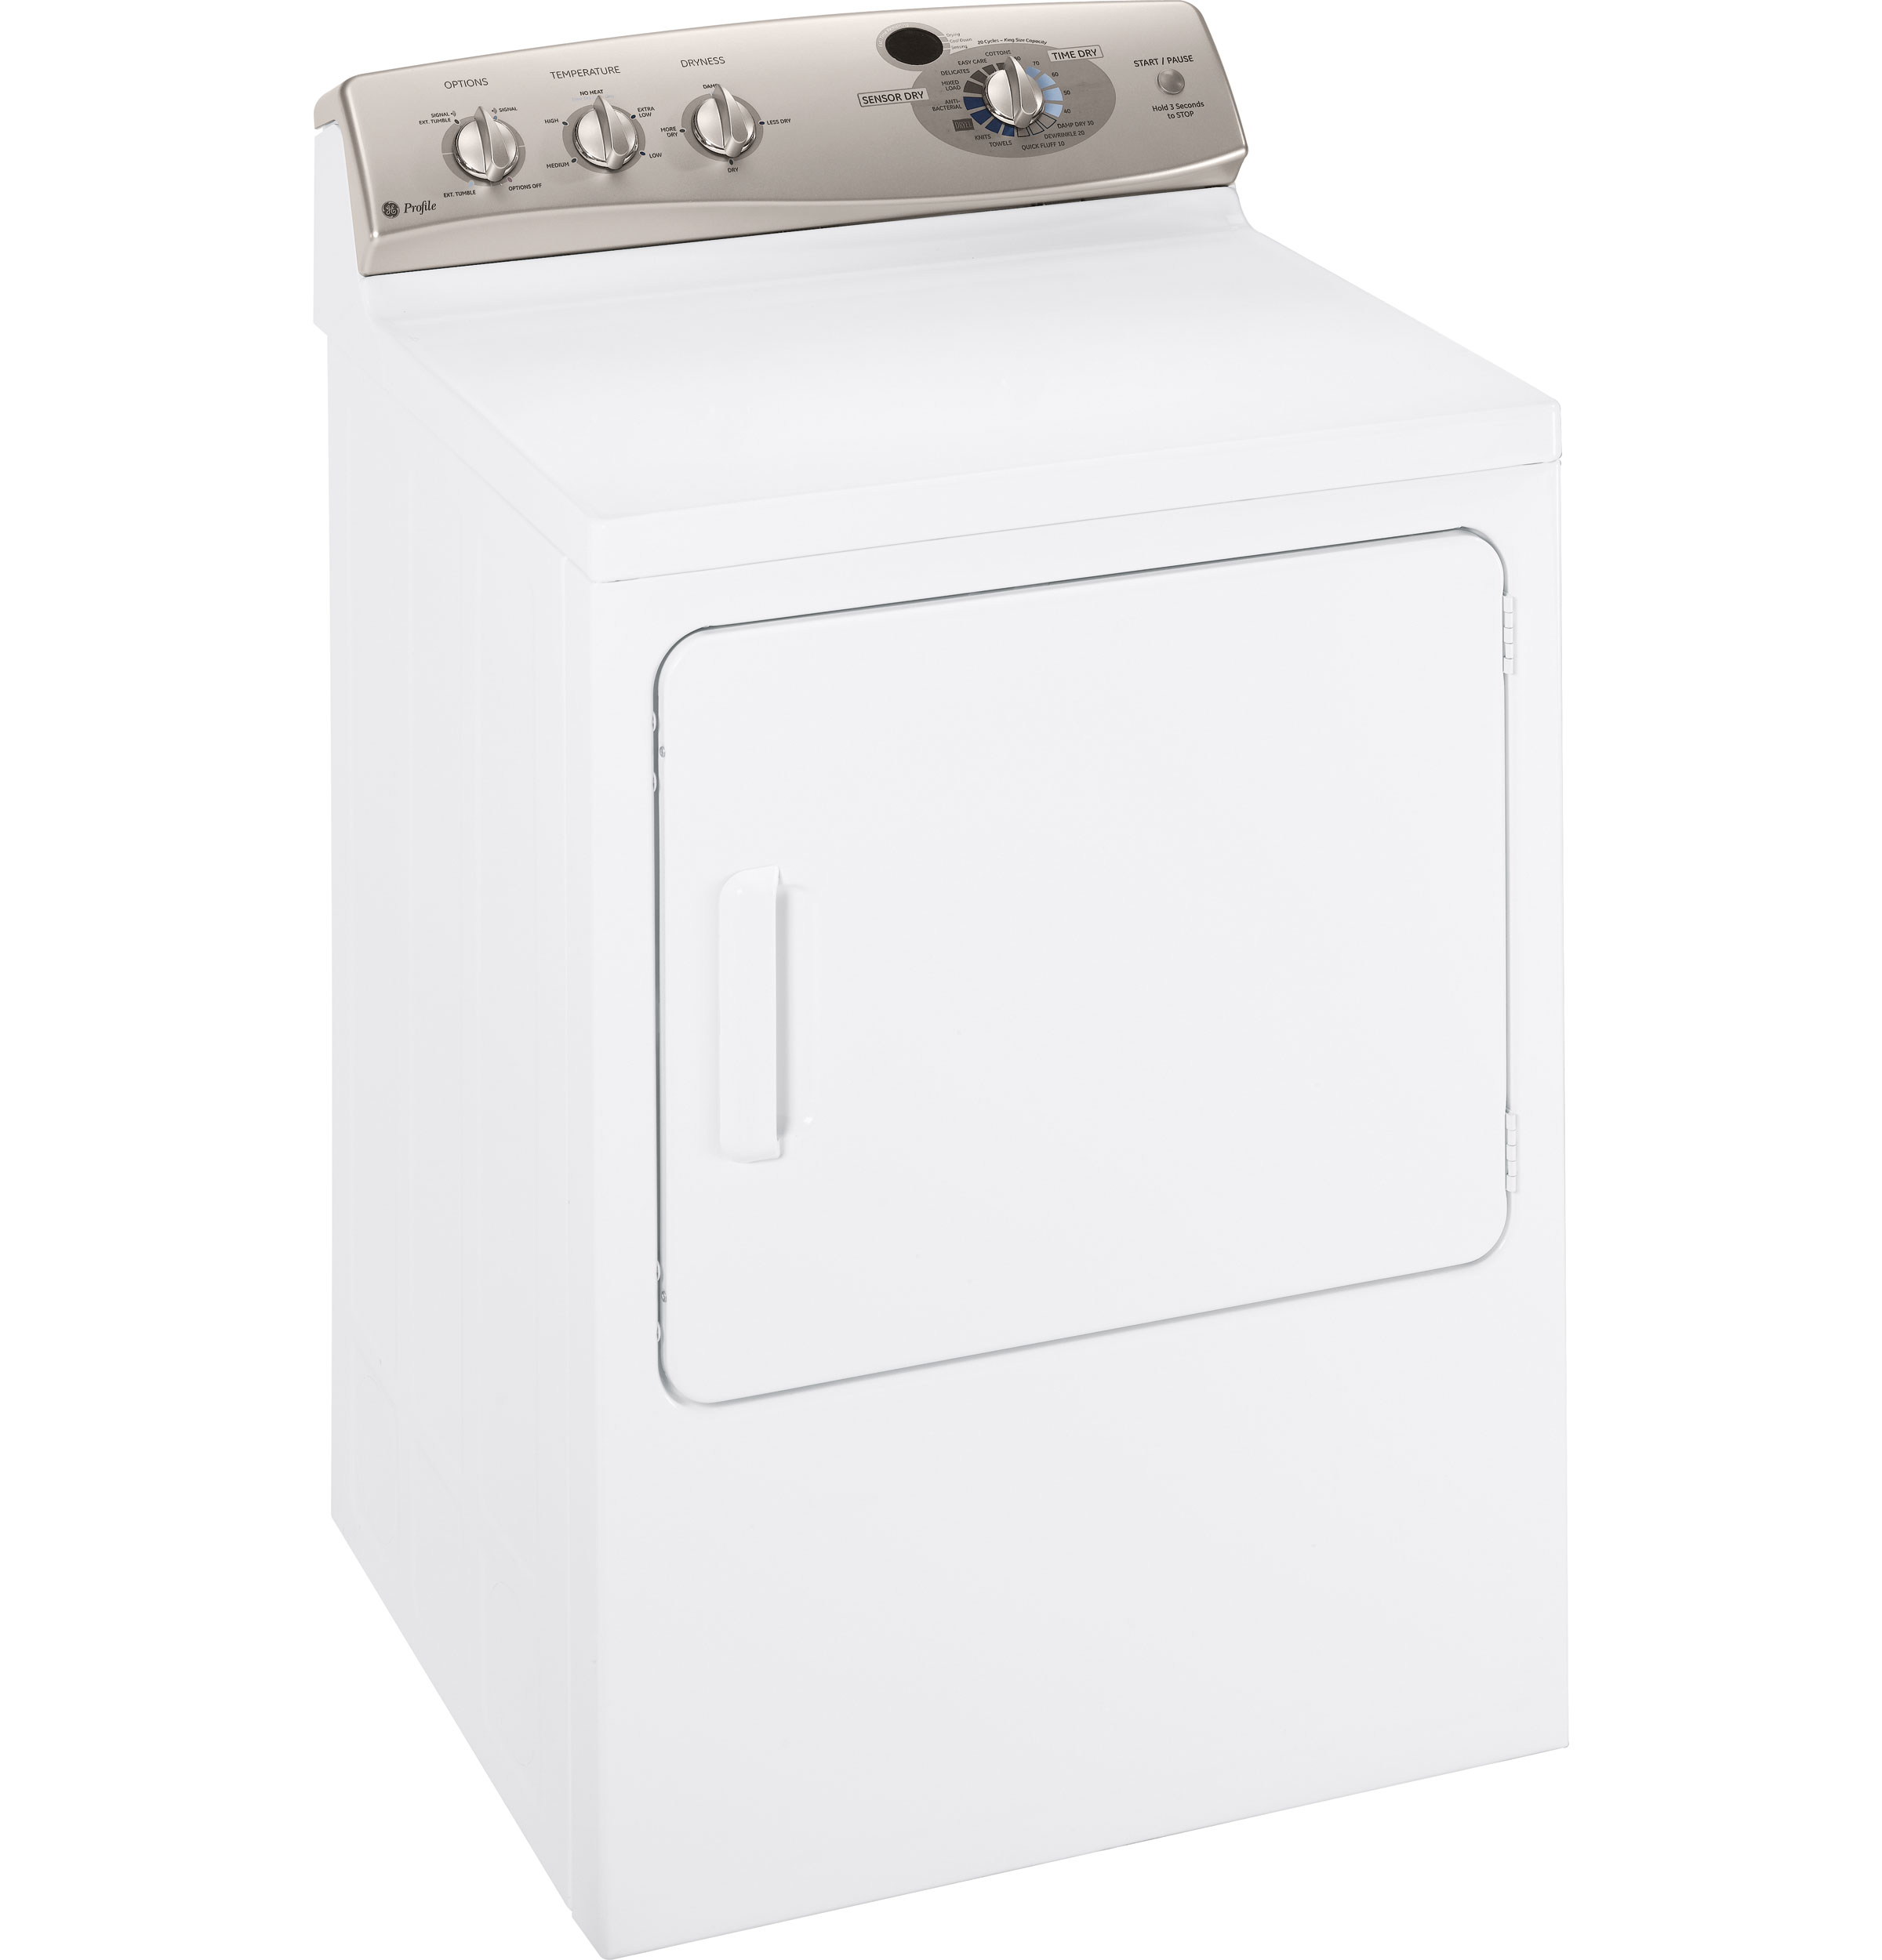 Ge Profile 7 0 Cu Ft Super Capacity Electric Dryer With